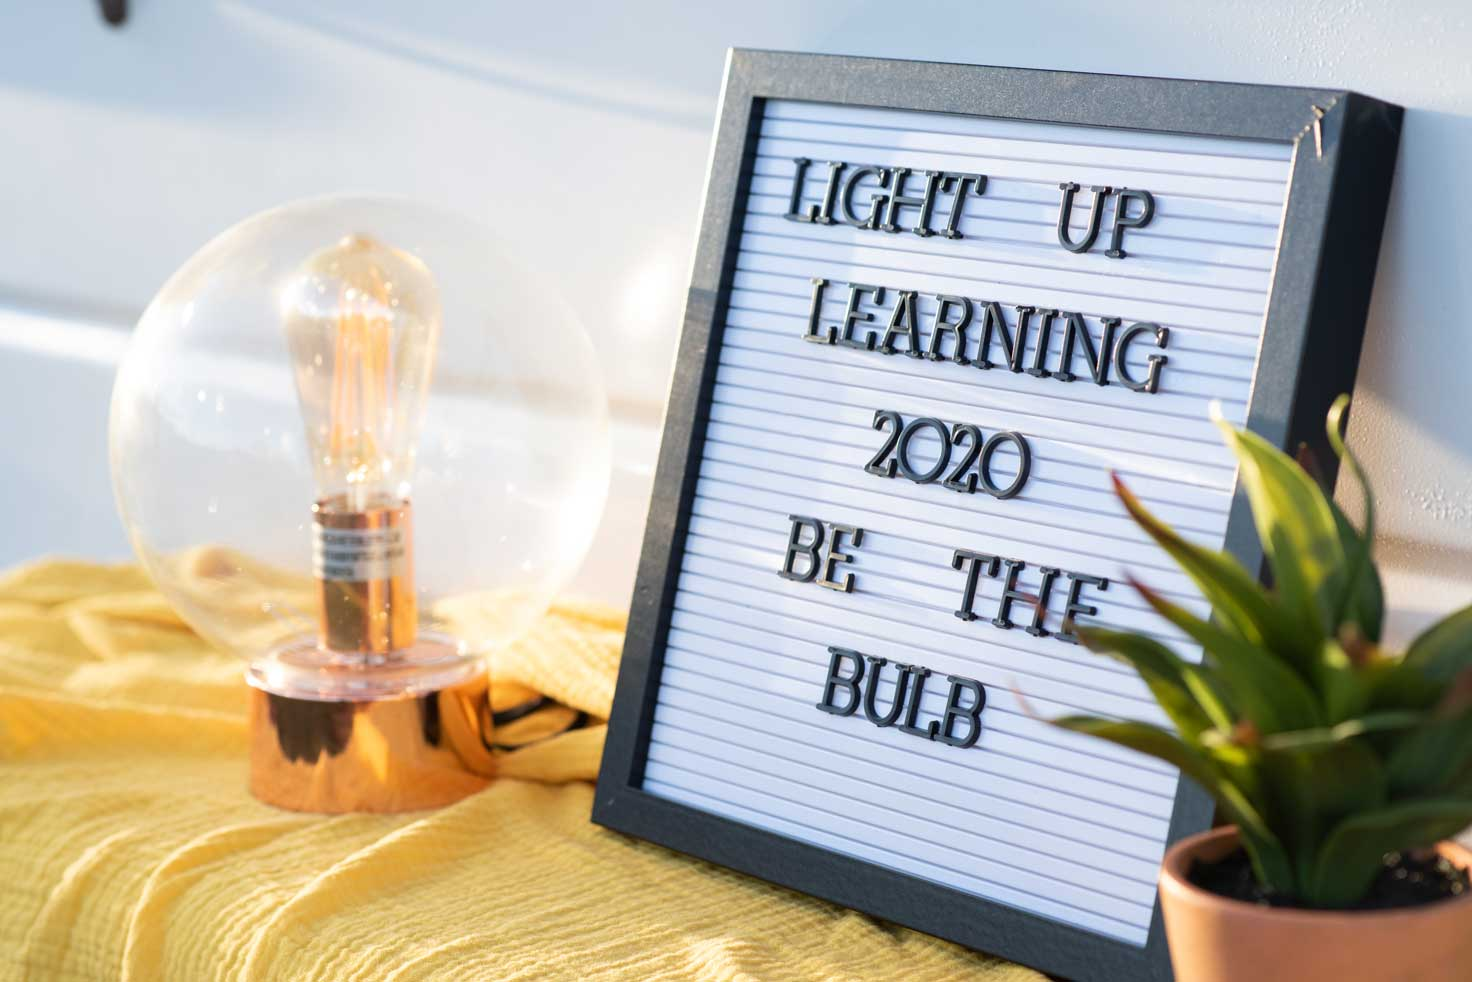 Light up Learning 2020